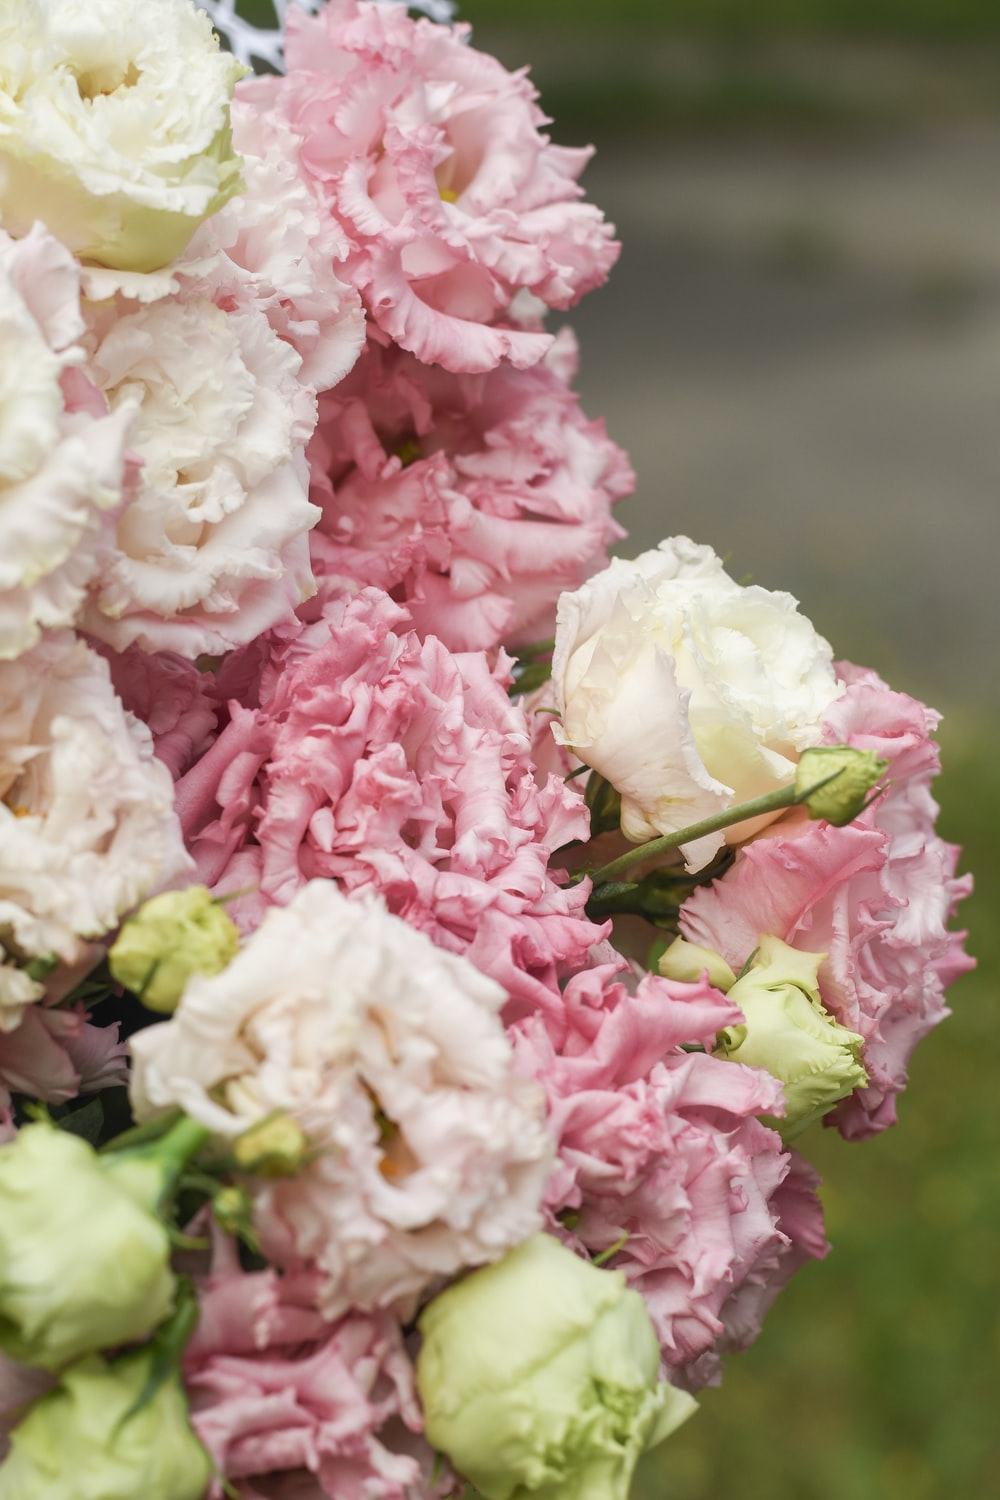 selective focus photography of pink and white rose flowers